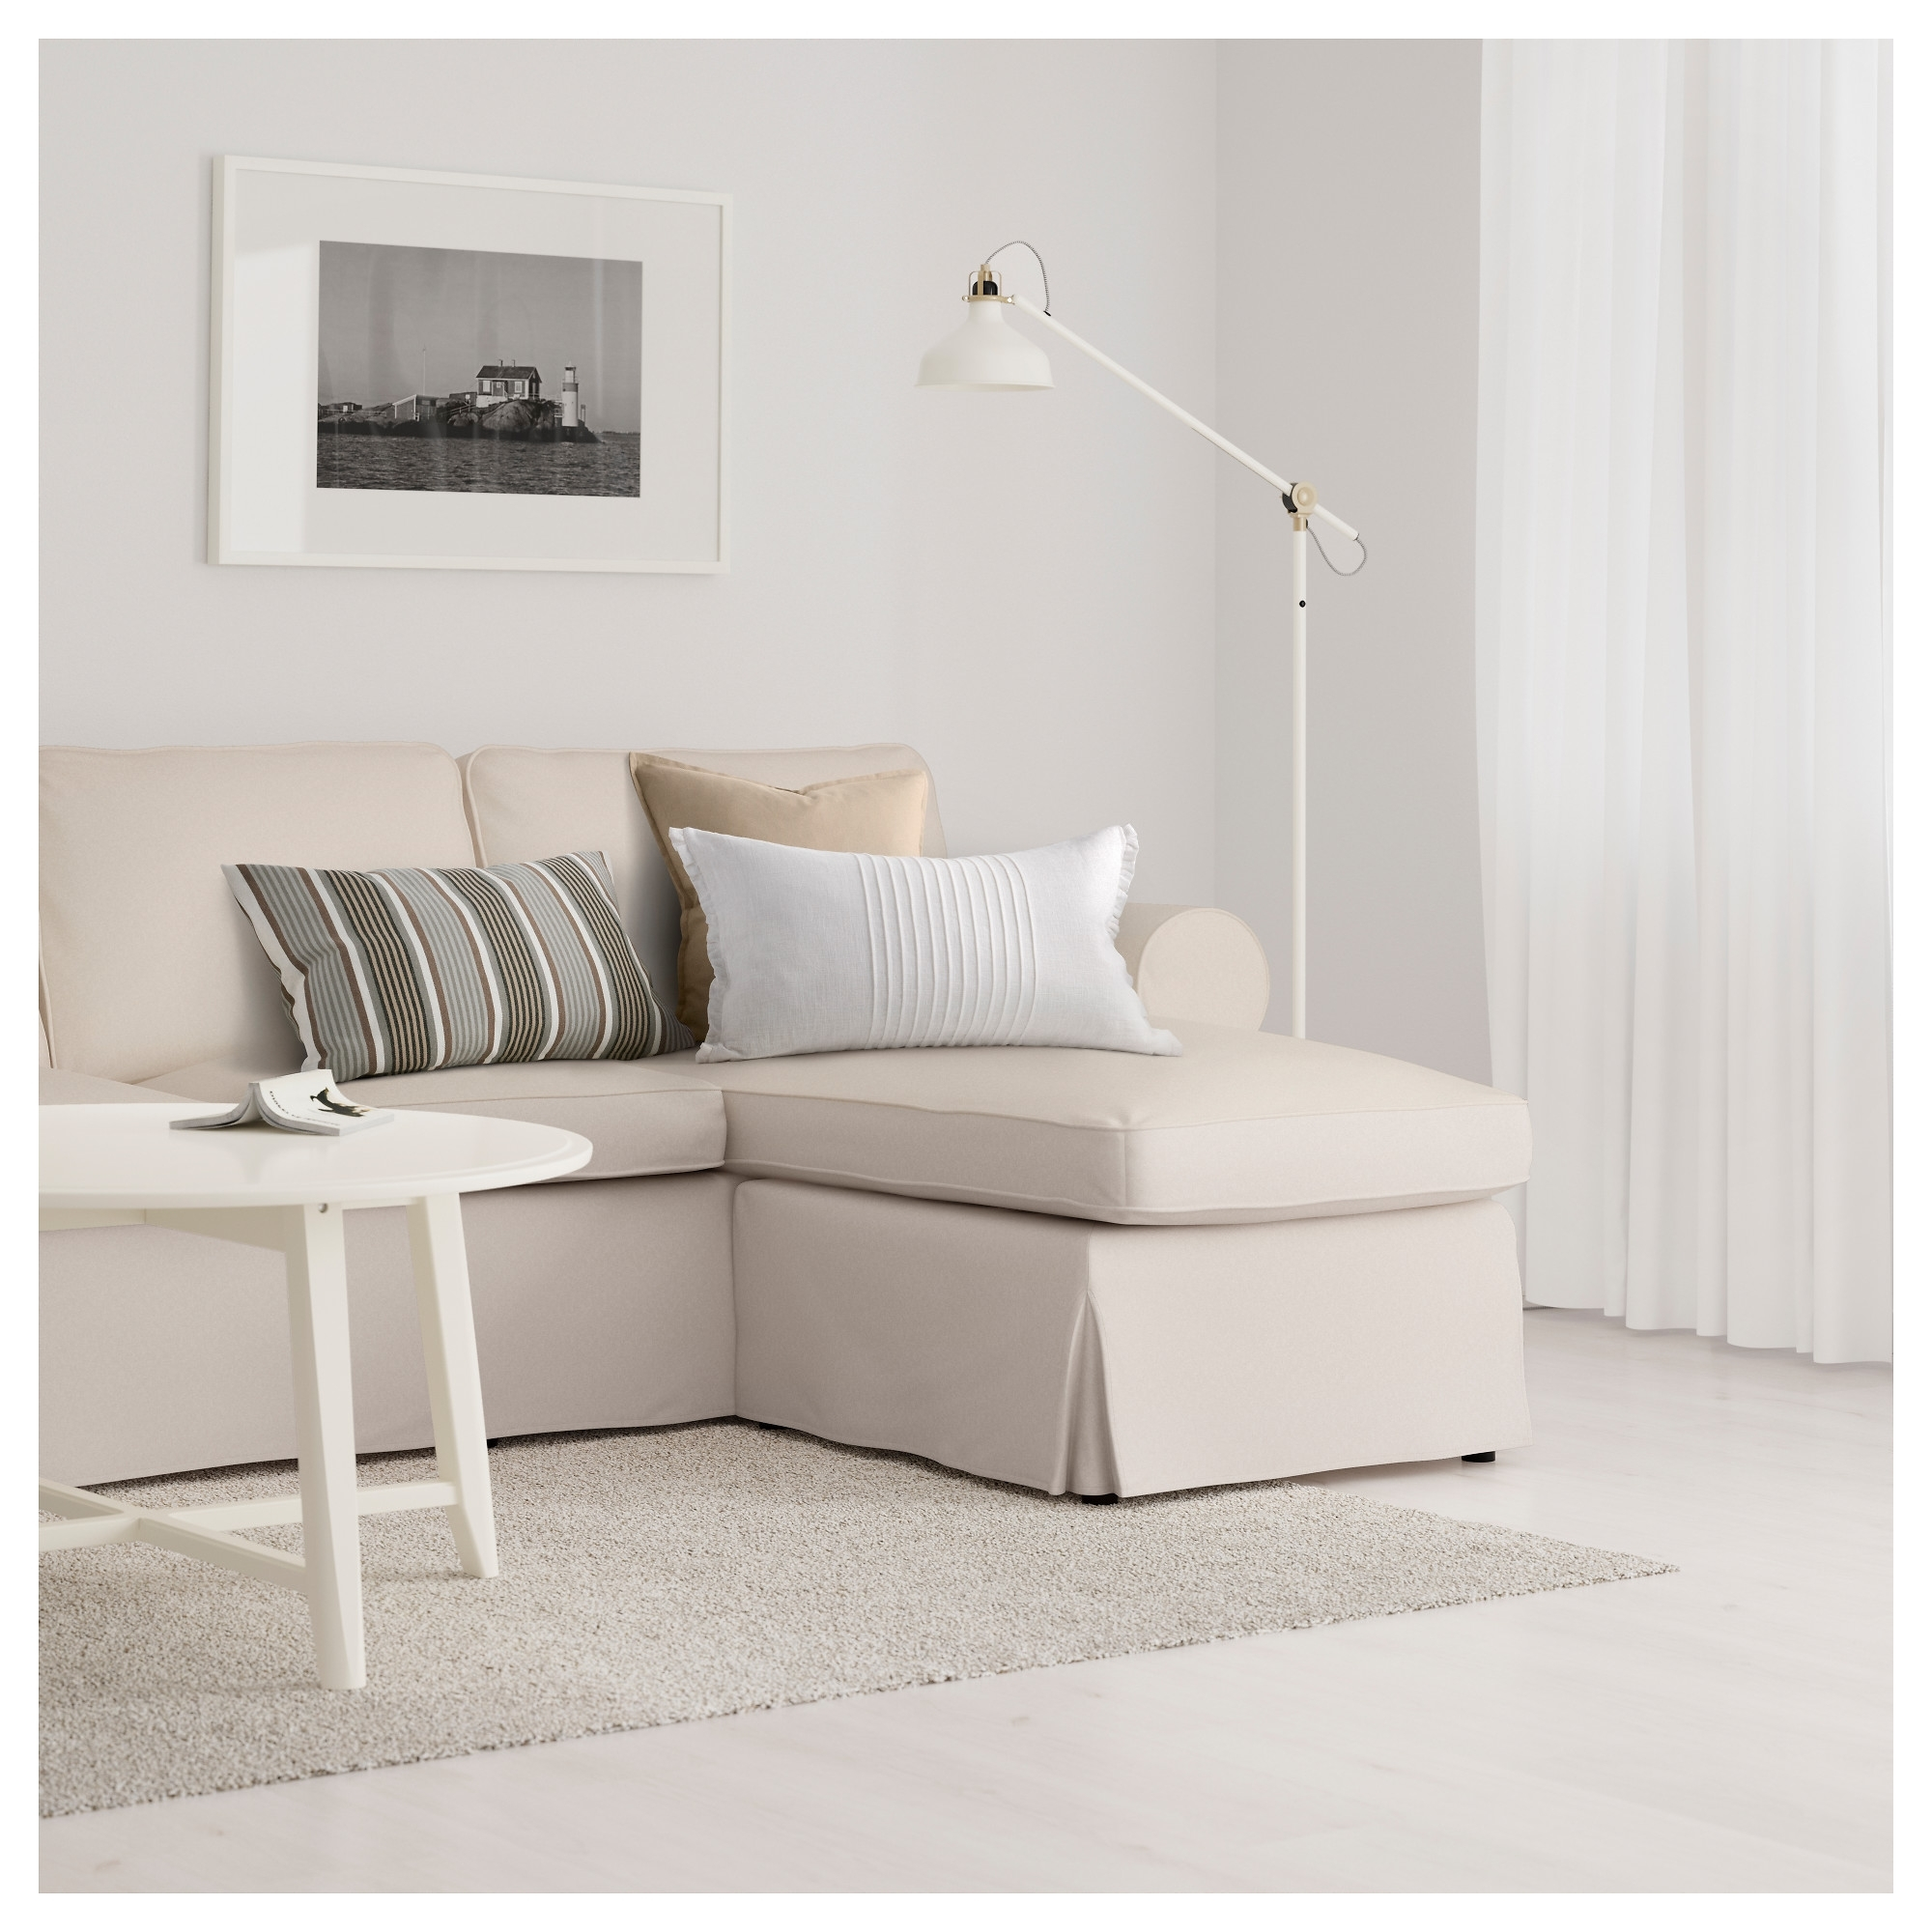 Newest Ikea Ektorp Loveseat Chaises Throughout Ektorp Sofa – With Chaise/nordvalla Light Blue – Ikea (View 12 of 15)